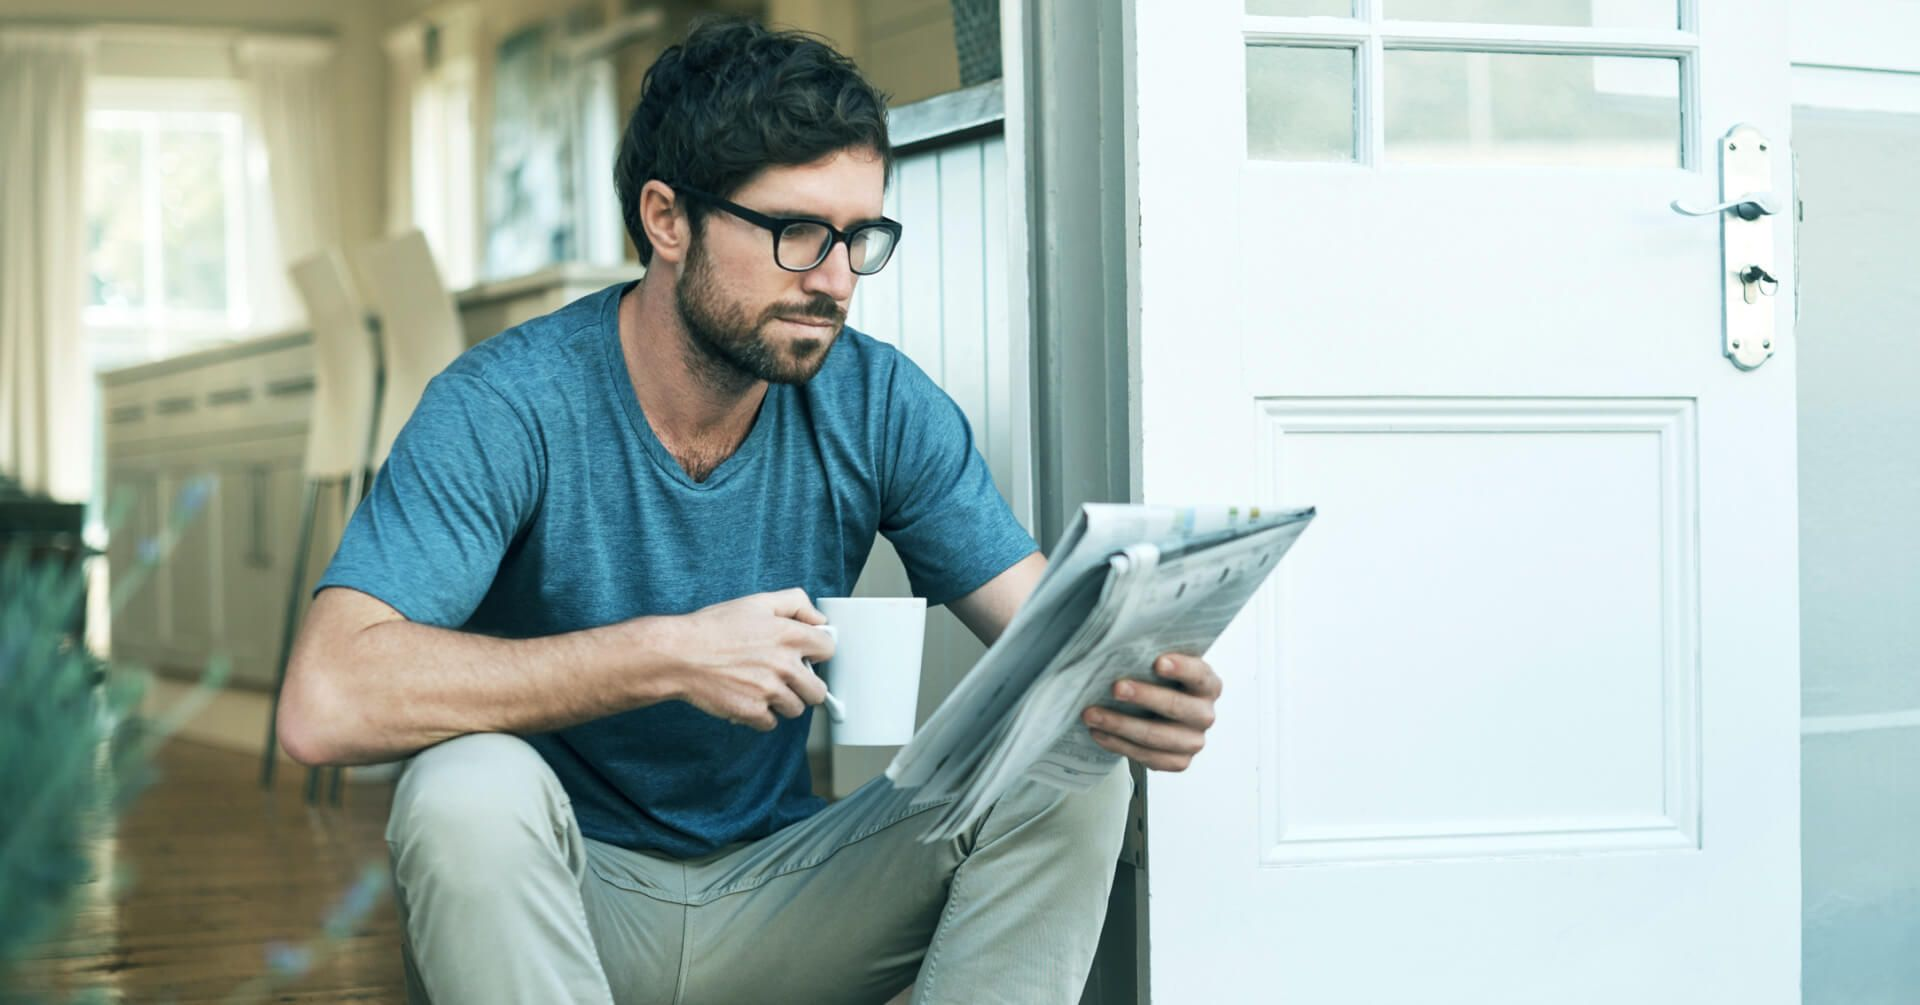 So the interest-only term on your mortgage is about to end? Let's look at your options